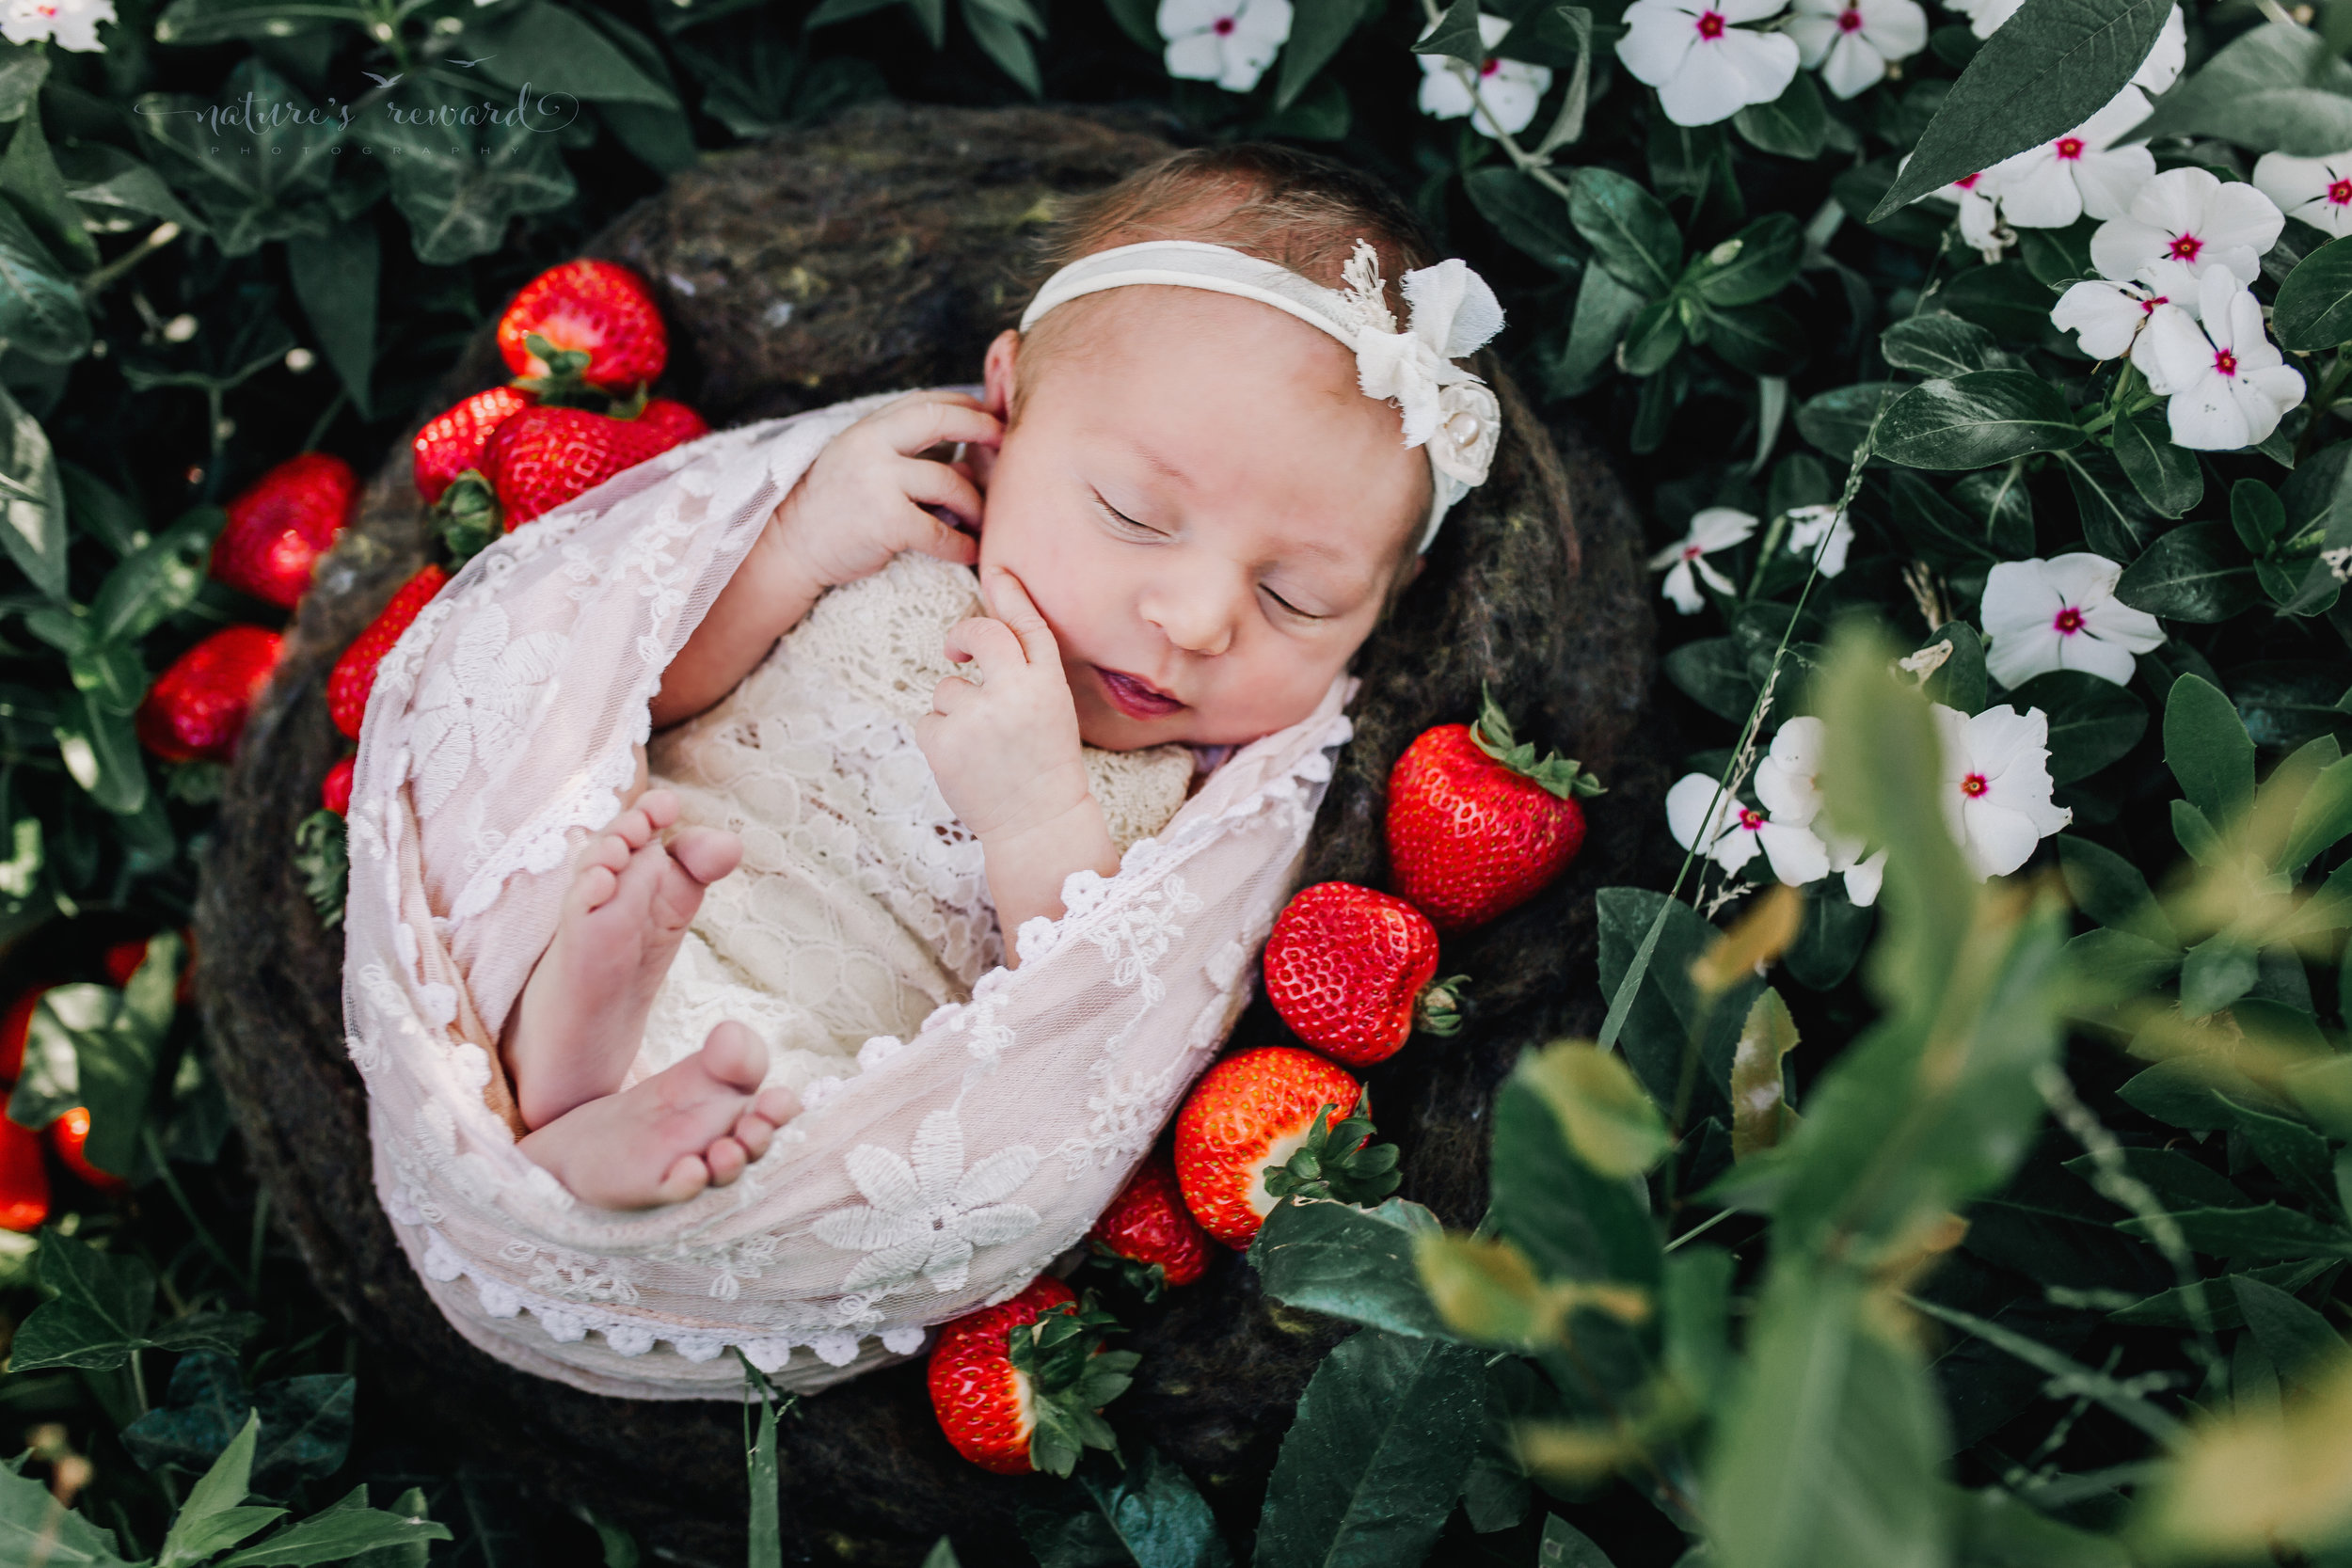 Newborn Baby Girl in a lace romper swaddled in pink lace in a garden with white flowers and red strawberries. A Portrait By Nature's Reward Photography, a San Bernardino Family, Child, and Newborn Baby Photographer.